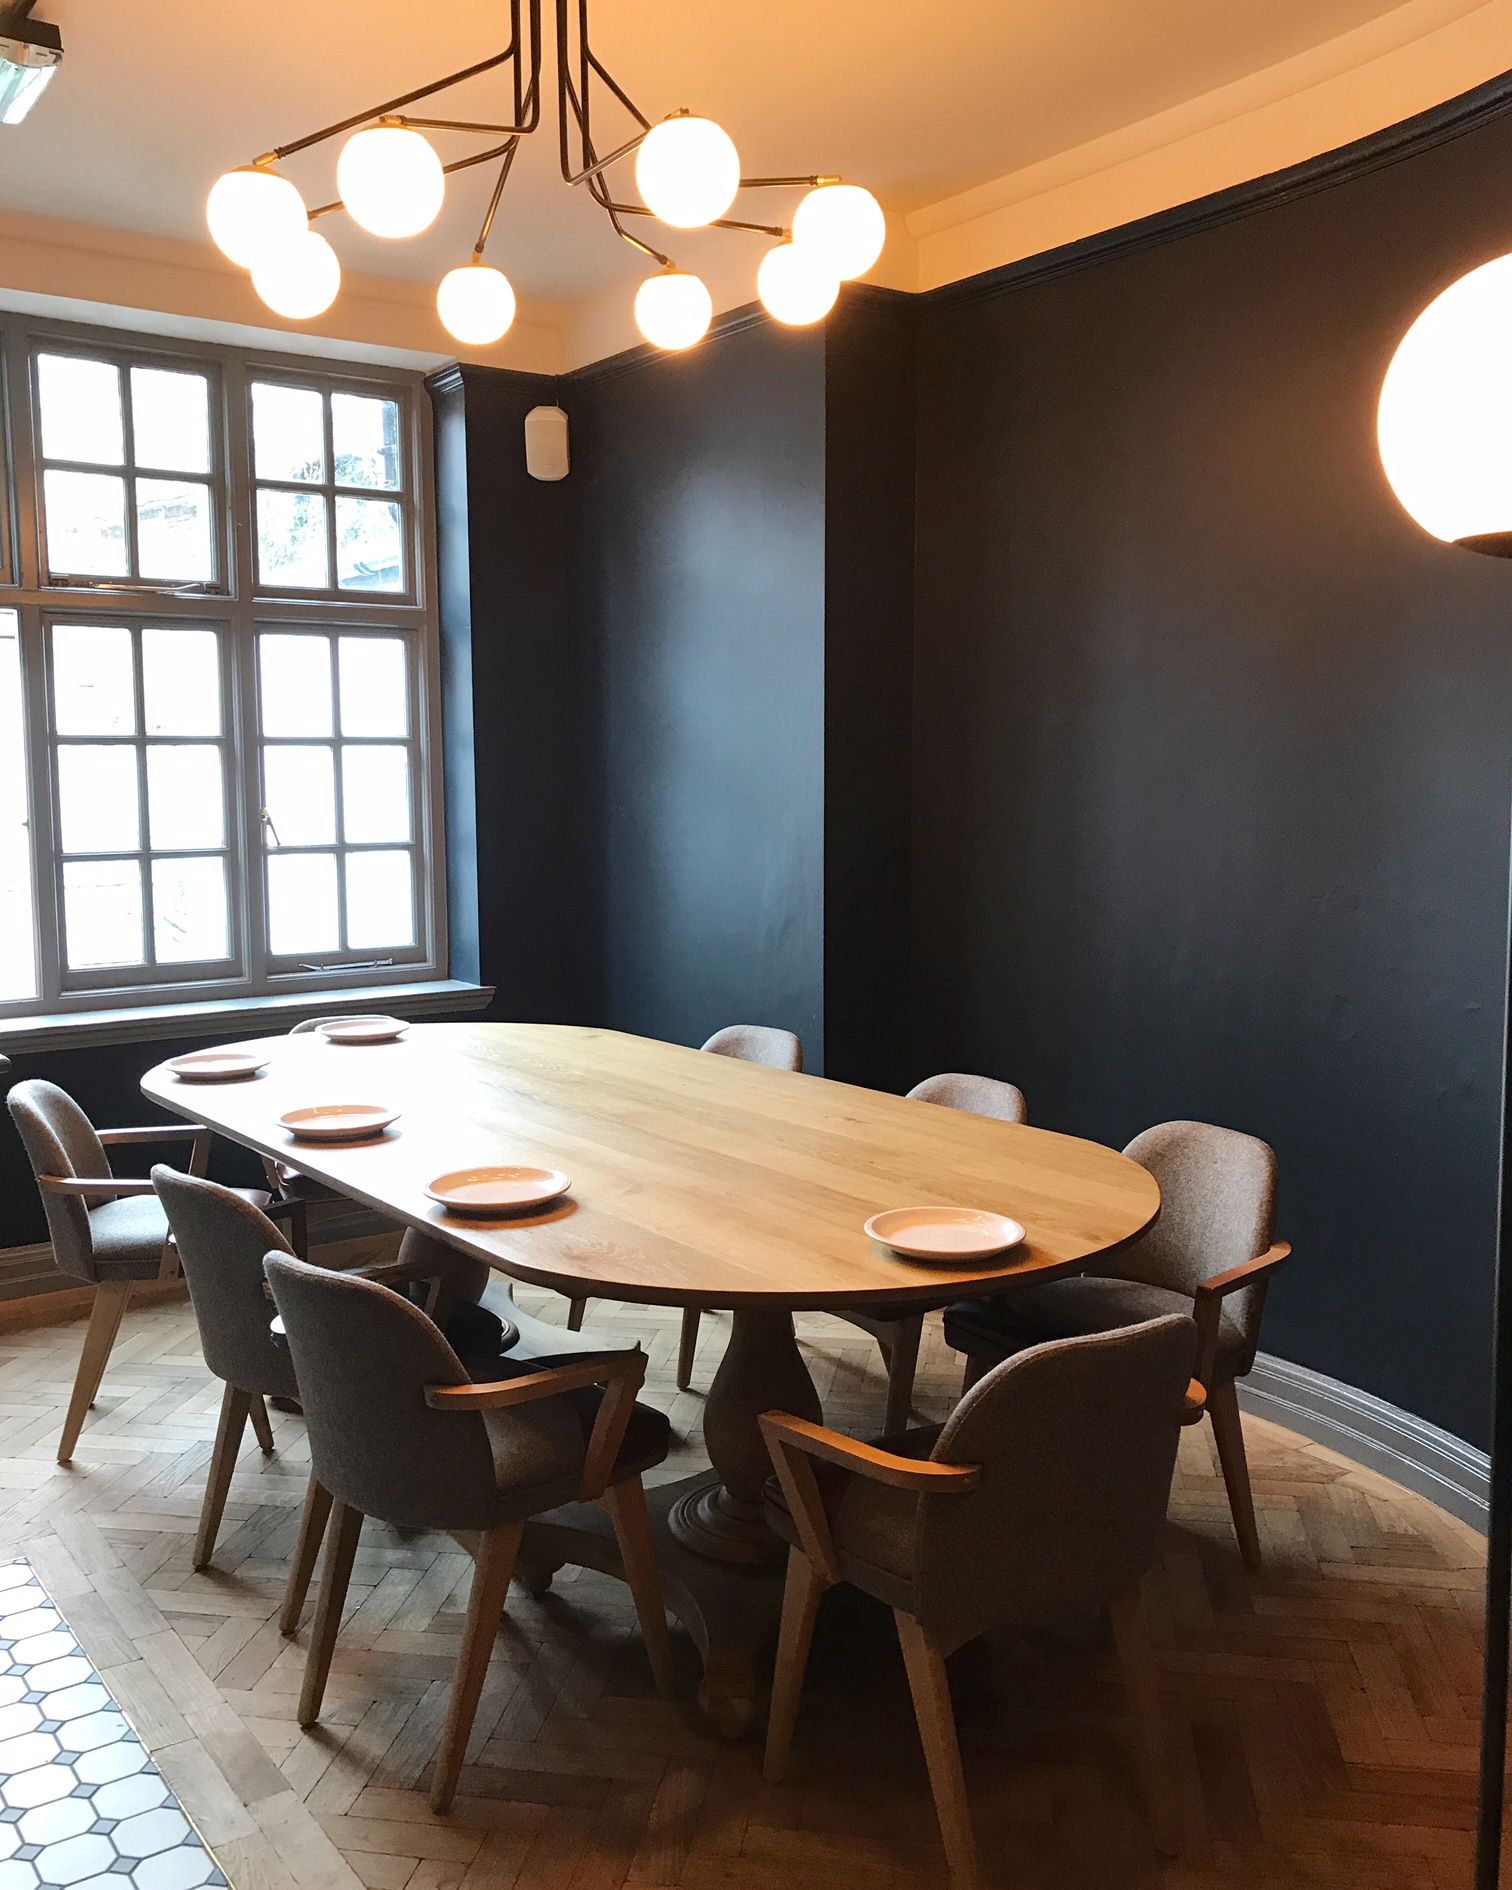 Superieur It Was Also An Opportunity To Check Out Pint Shopu0027s Revamp, Namely Its Two  New Private Dining Rooms On The First Floor And The Covered, Heated  Courtyard ...